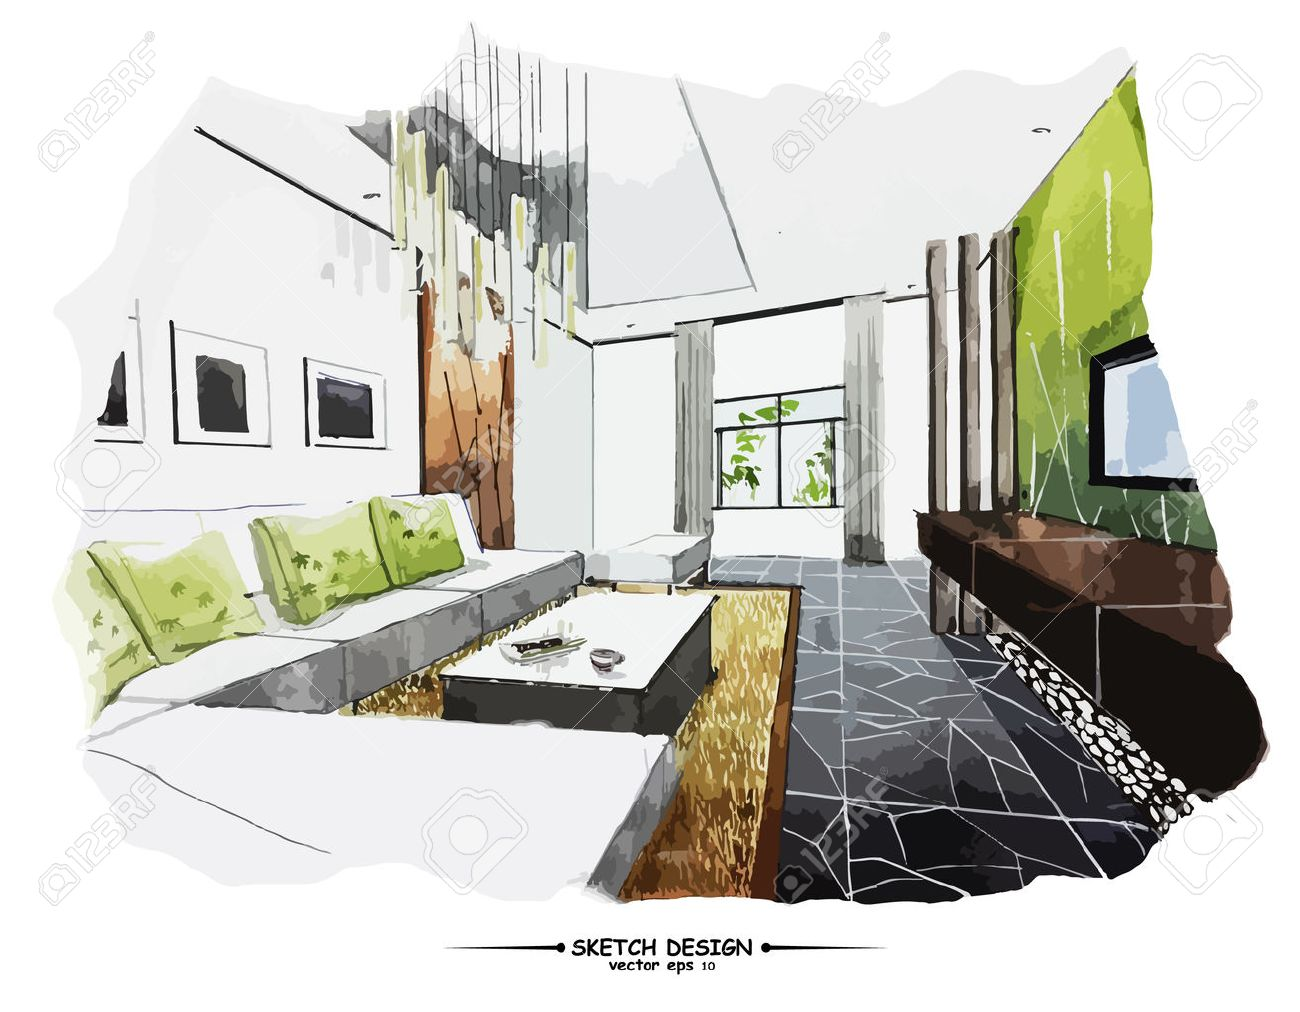 482 692 Interior Design Stock Illustrations Cliparts And Royalty